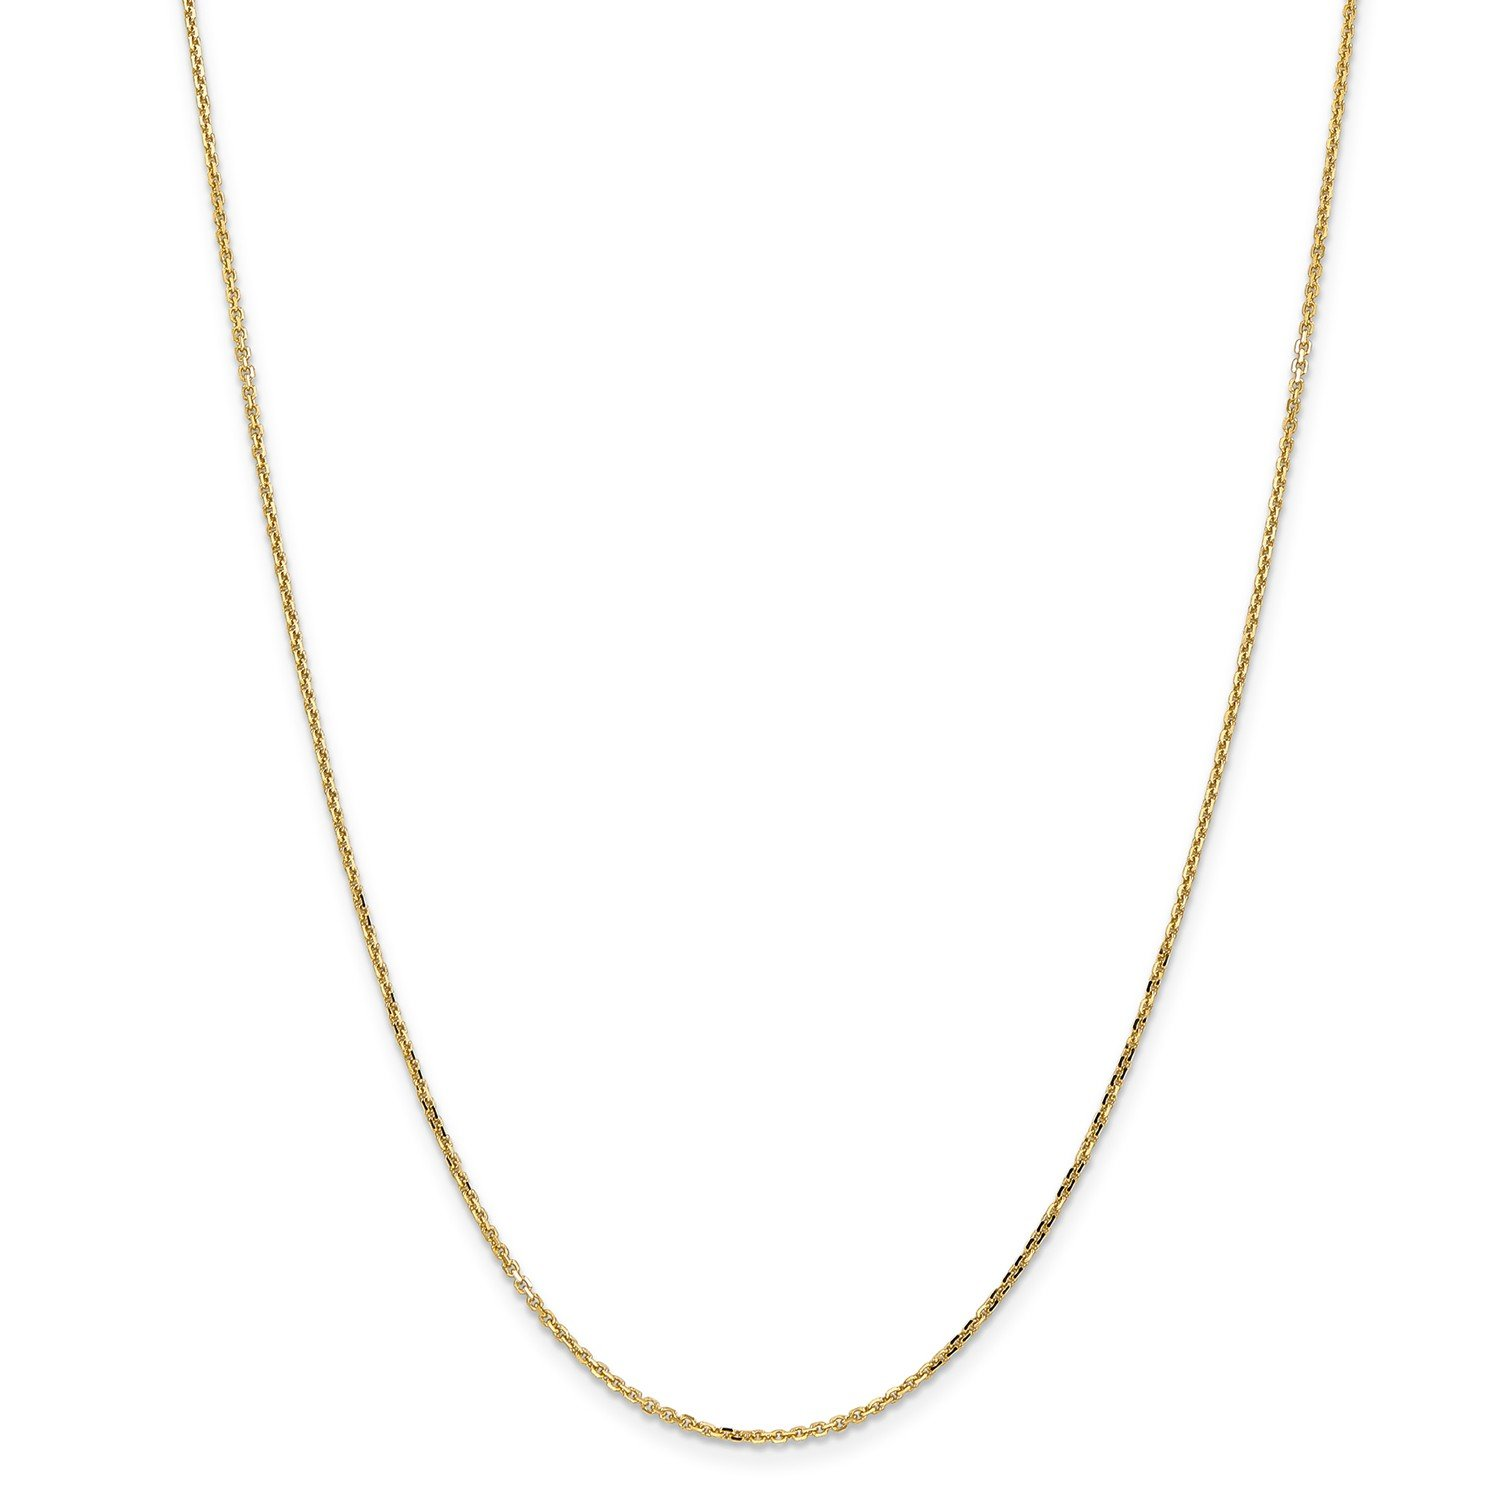 Roy Rose Jewelry 14K Yellow Gold 1.4mm Diamond-cut Cable Chain Necklace ~ Length 18'' inches